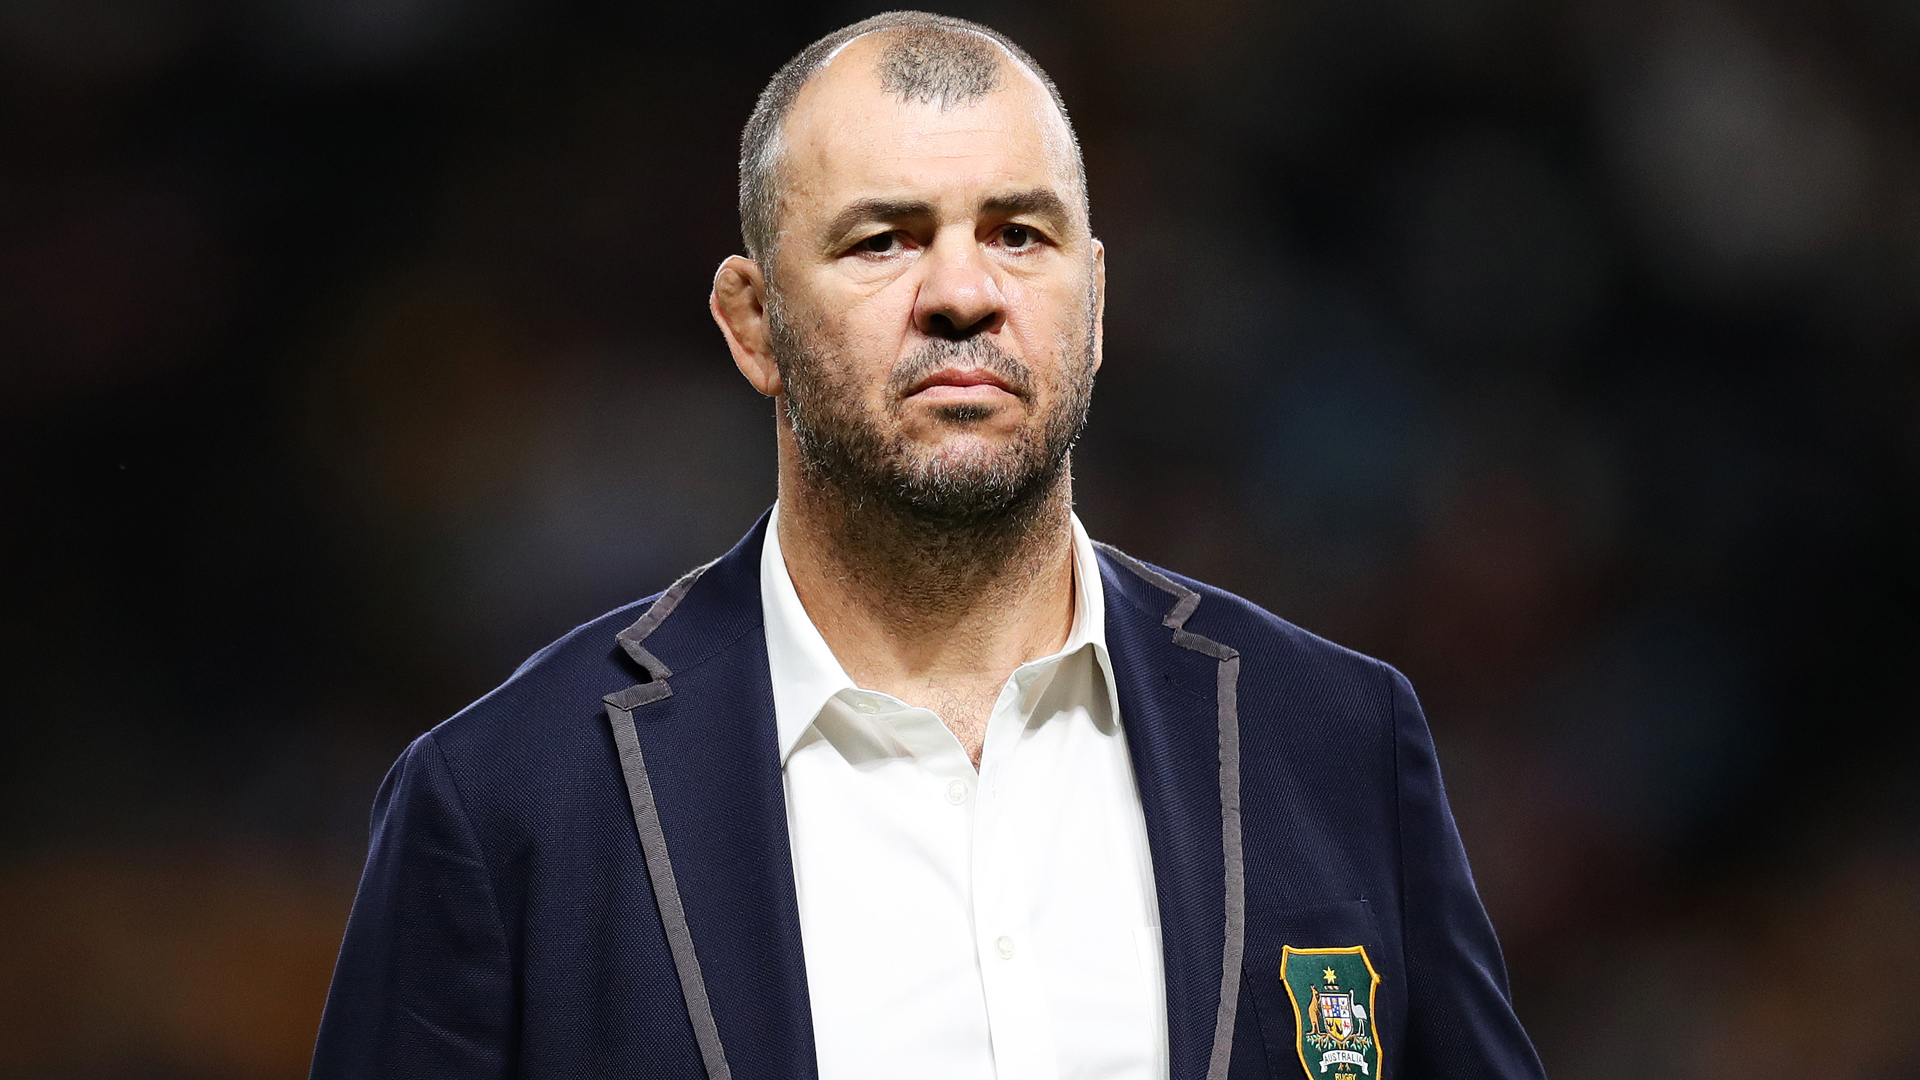 Rugby World Cup 2019: It's not in the spirit of the game – Cheika criticises Fiji over Hodge referral